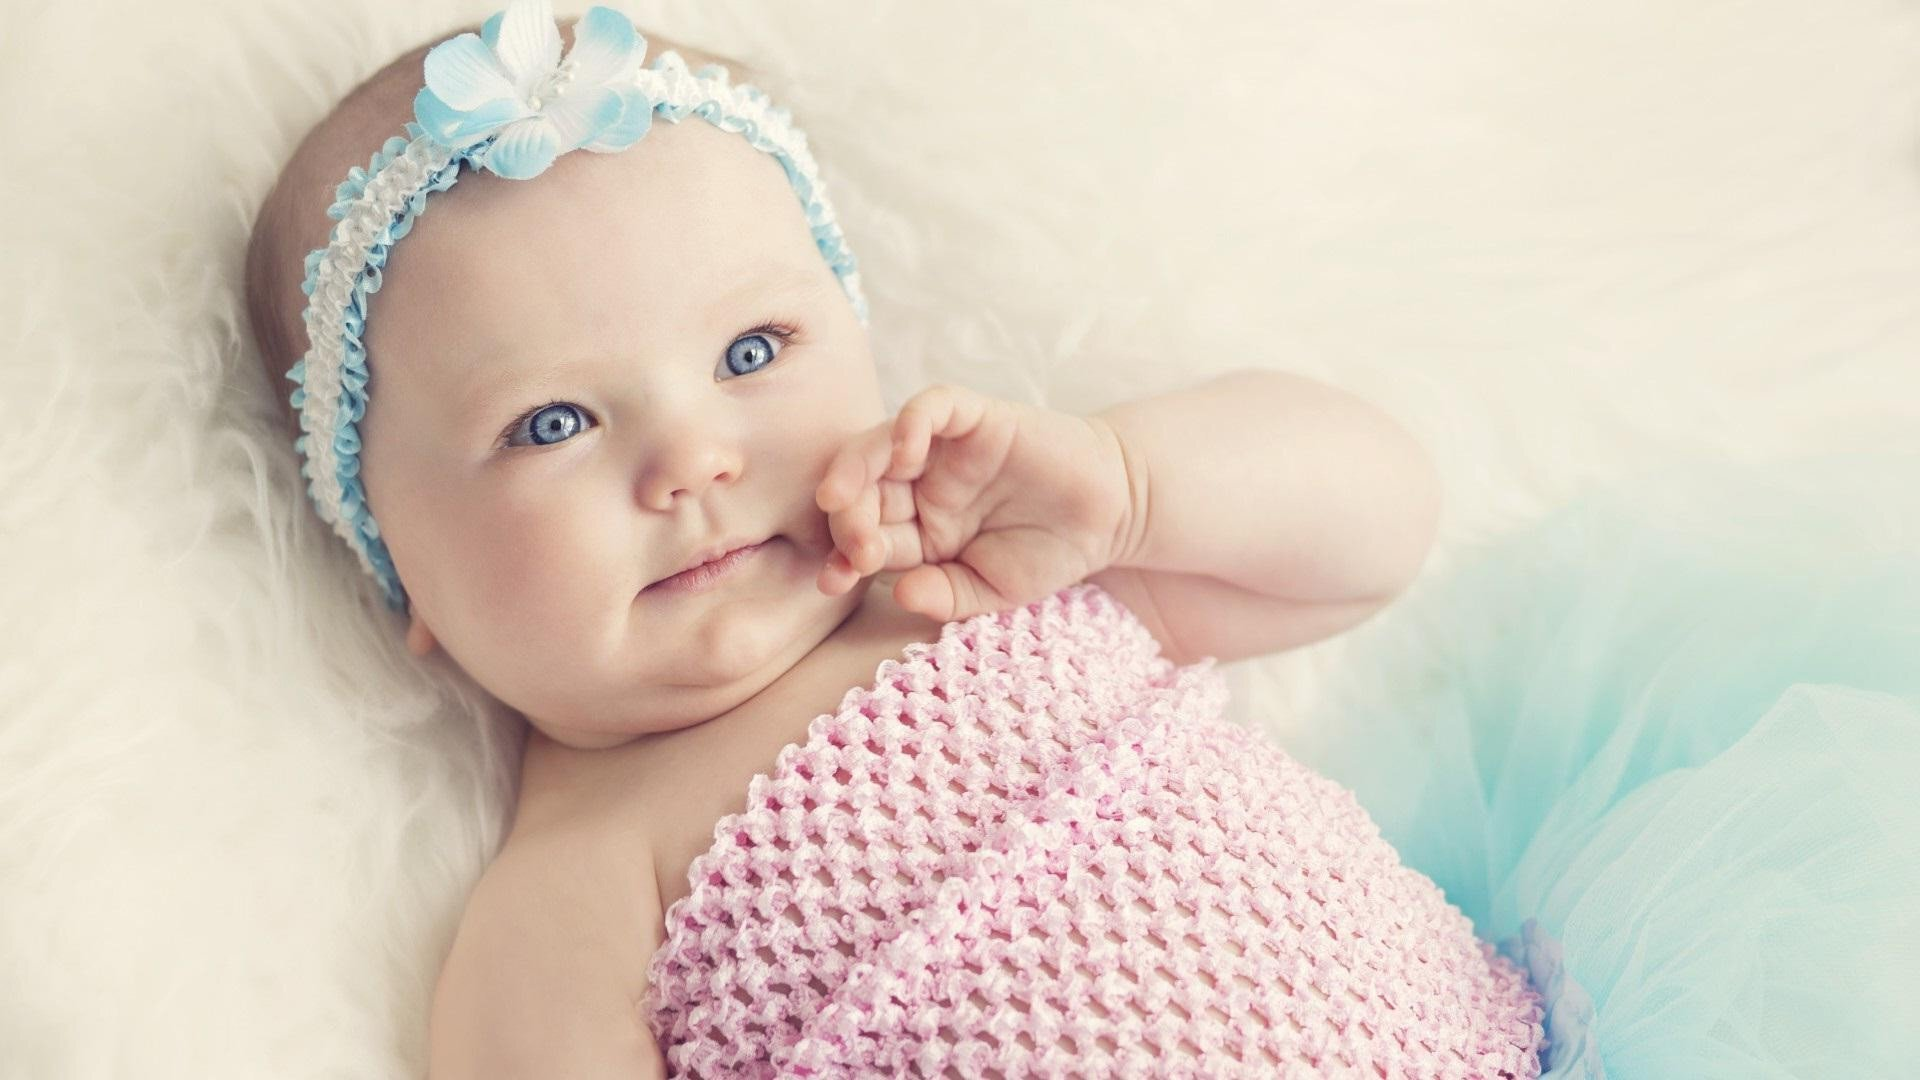 1920x1080 cute baby with blue eyes laptop full hd 1080p hd 4k